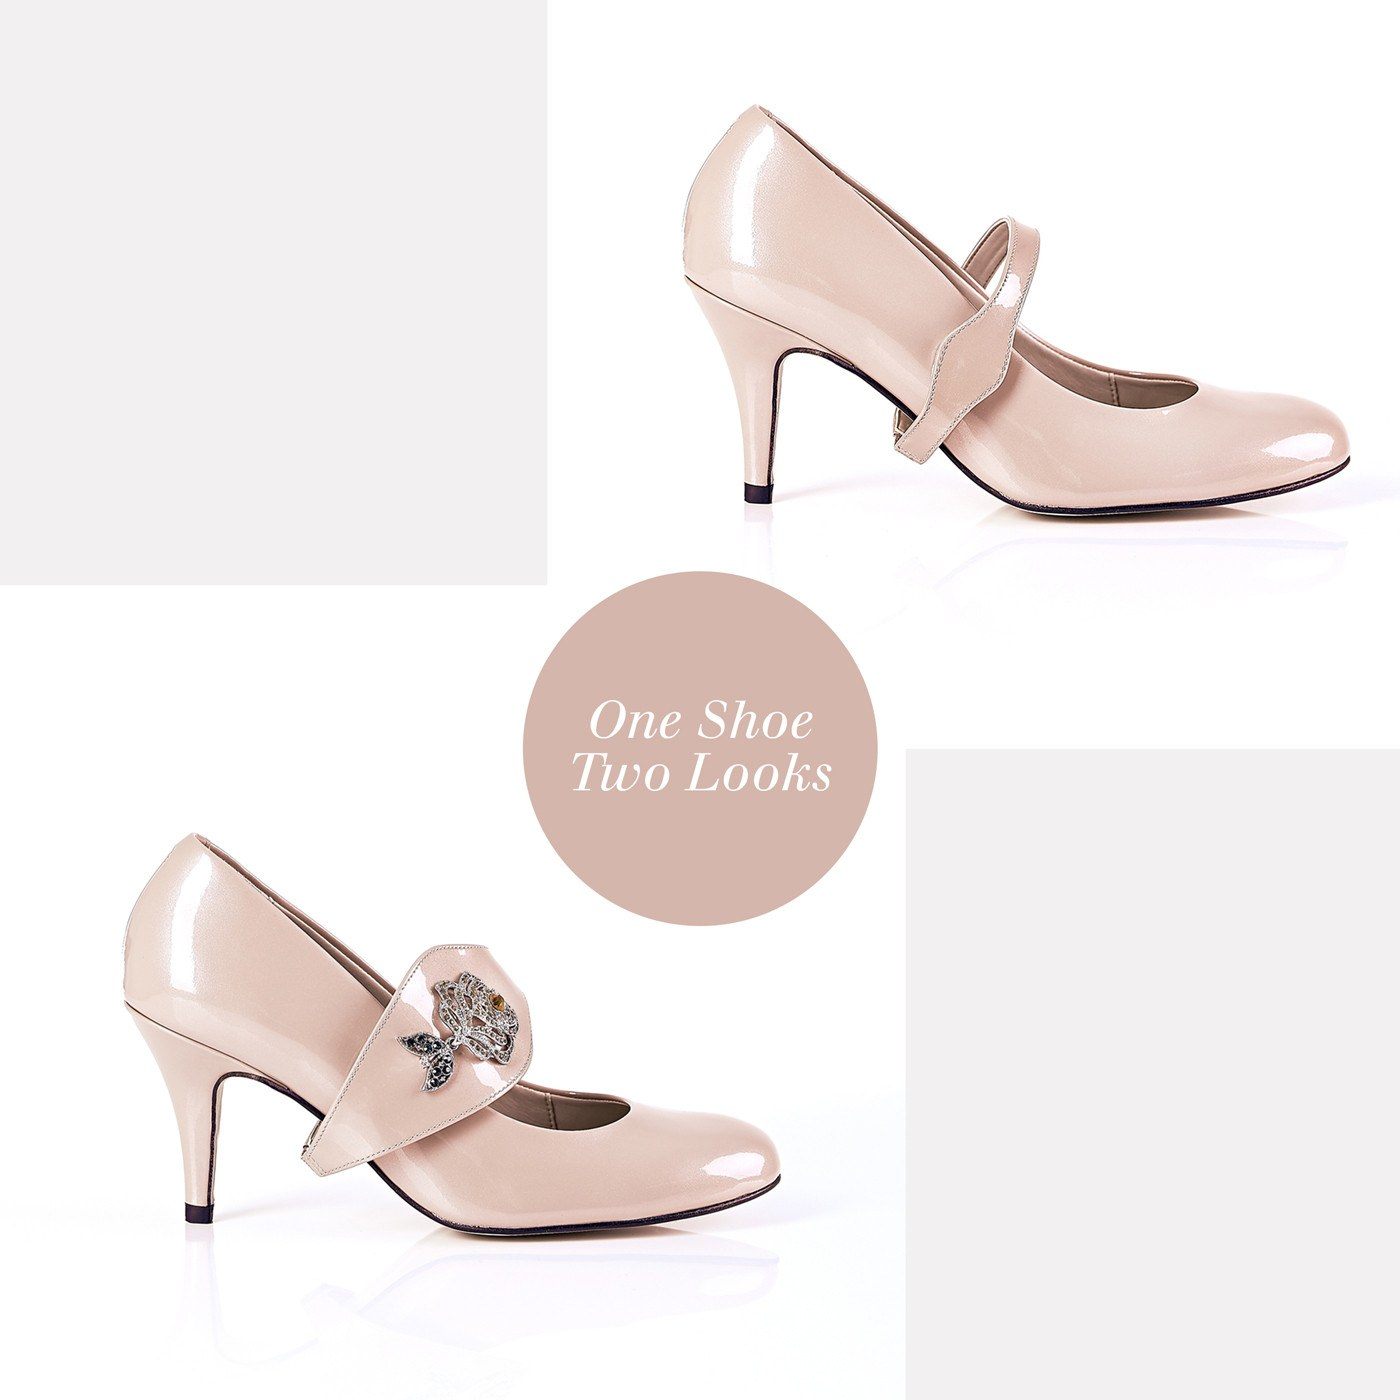 Time To Bloom - 18 Hour Heels - Blush Leather - Shoes by Shaherazad